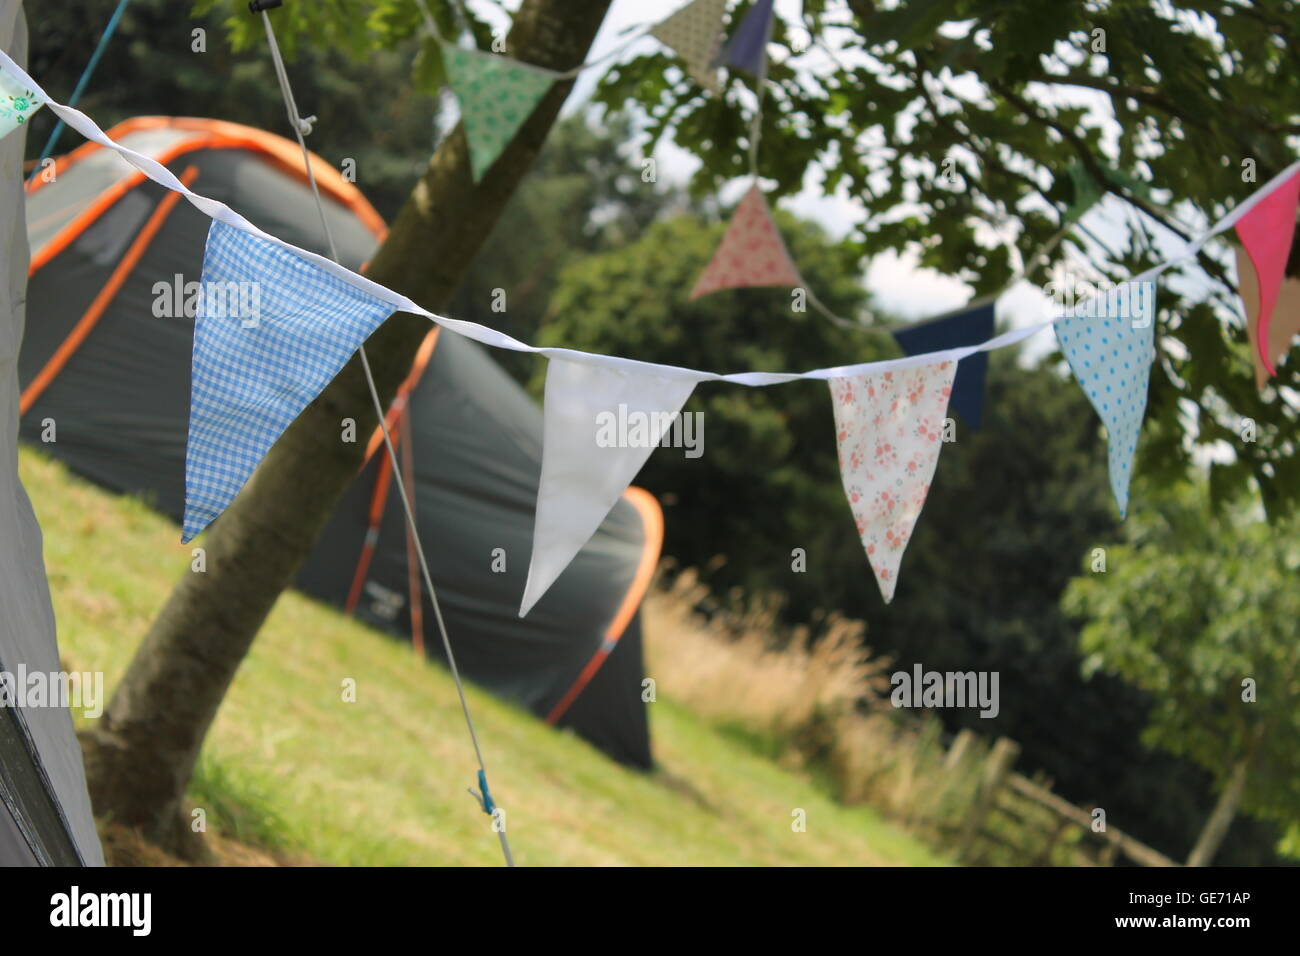 Bunting, Summer Wedding, Party, Camping, Tent, Glamping, Garland, Outdoor  Decoration, Garden Party, Vintage, Flags